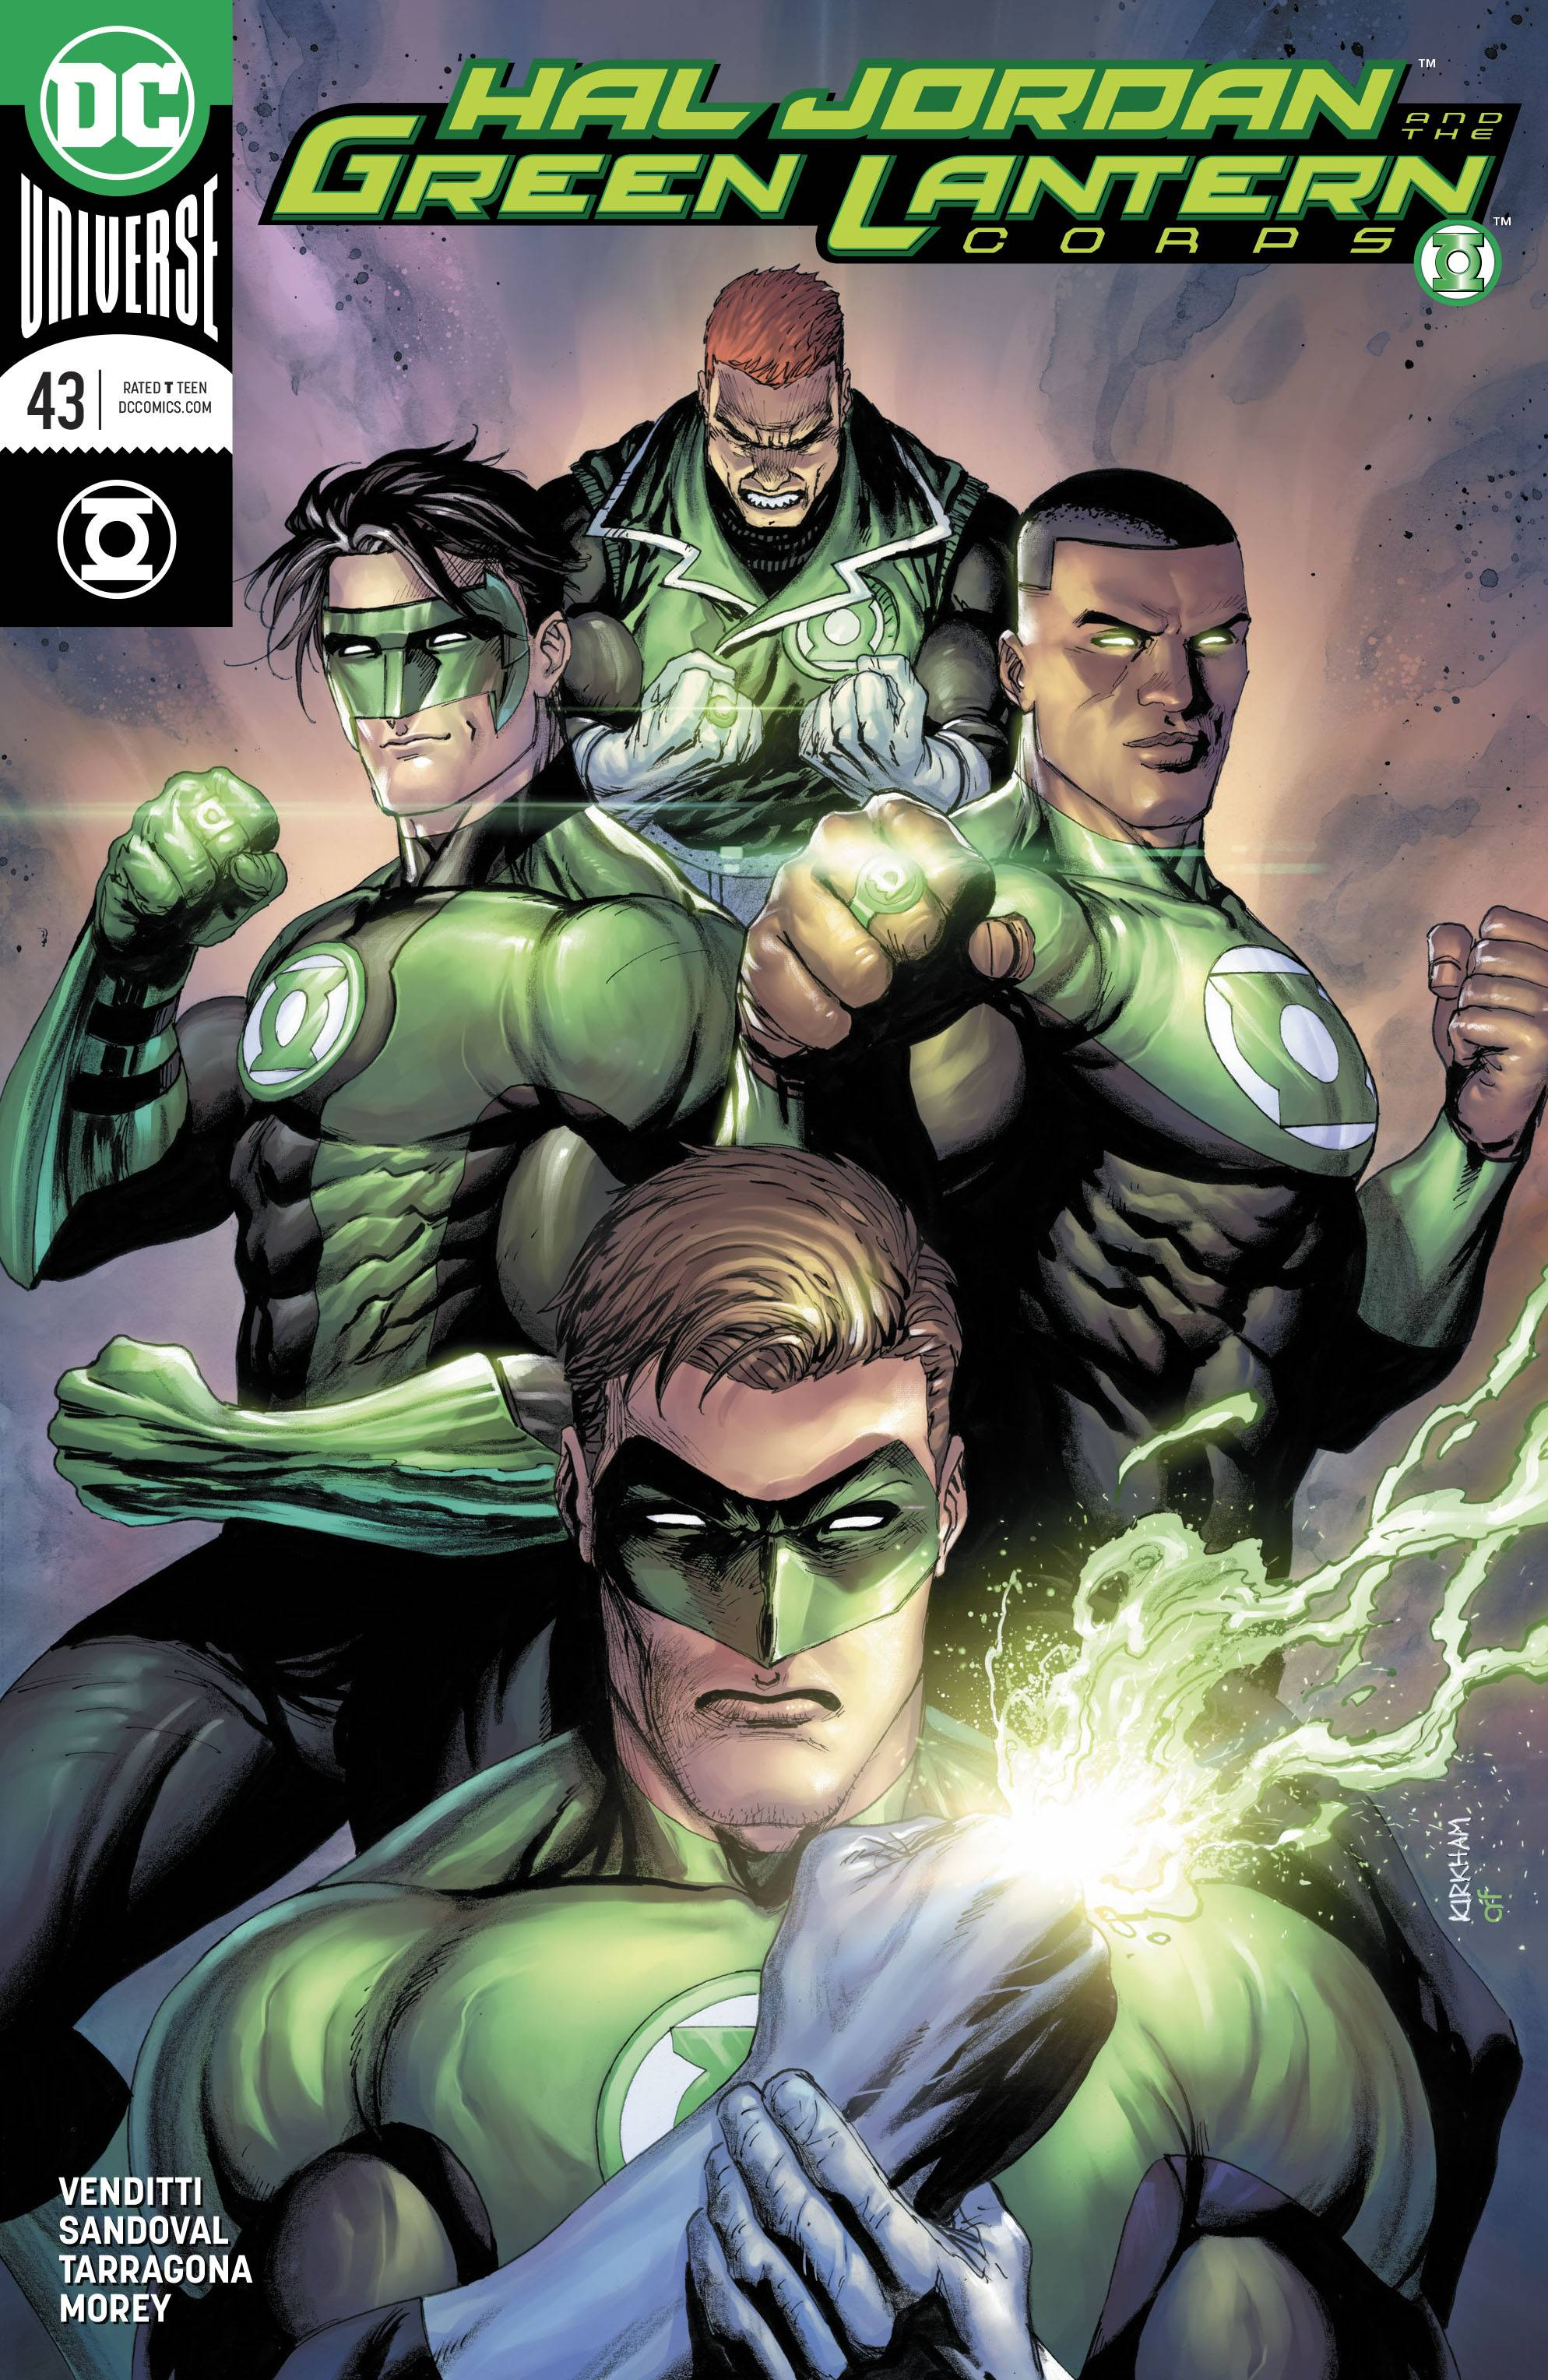 hal jordan and the green lantern corps #43 variant cover